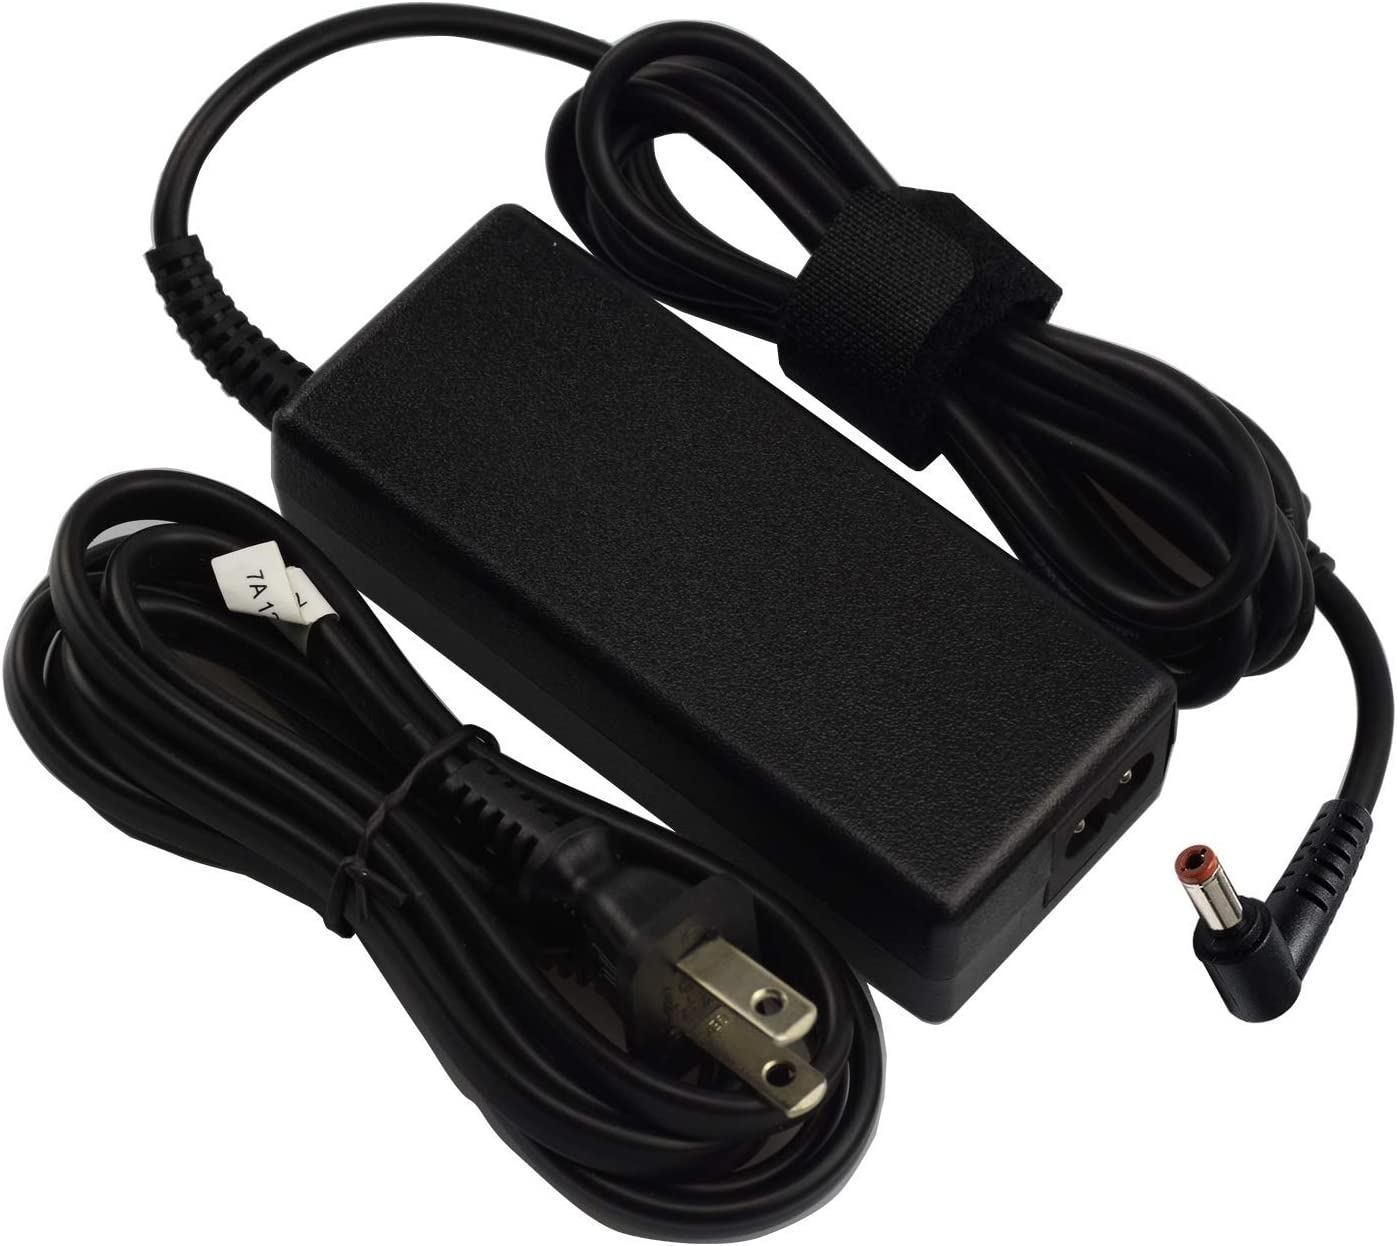 UL Listed 65W AC Charger Fit for Lenovo IBM IdeaPad S400 Y500 P500 P400 Y580 G580 G780 U410 U310 Y400 ADP-65KH B PA-1650-56LC 36001651 36001652 CPA-A065 Laptop Power Supply Adapter Cord